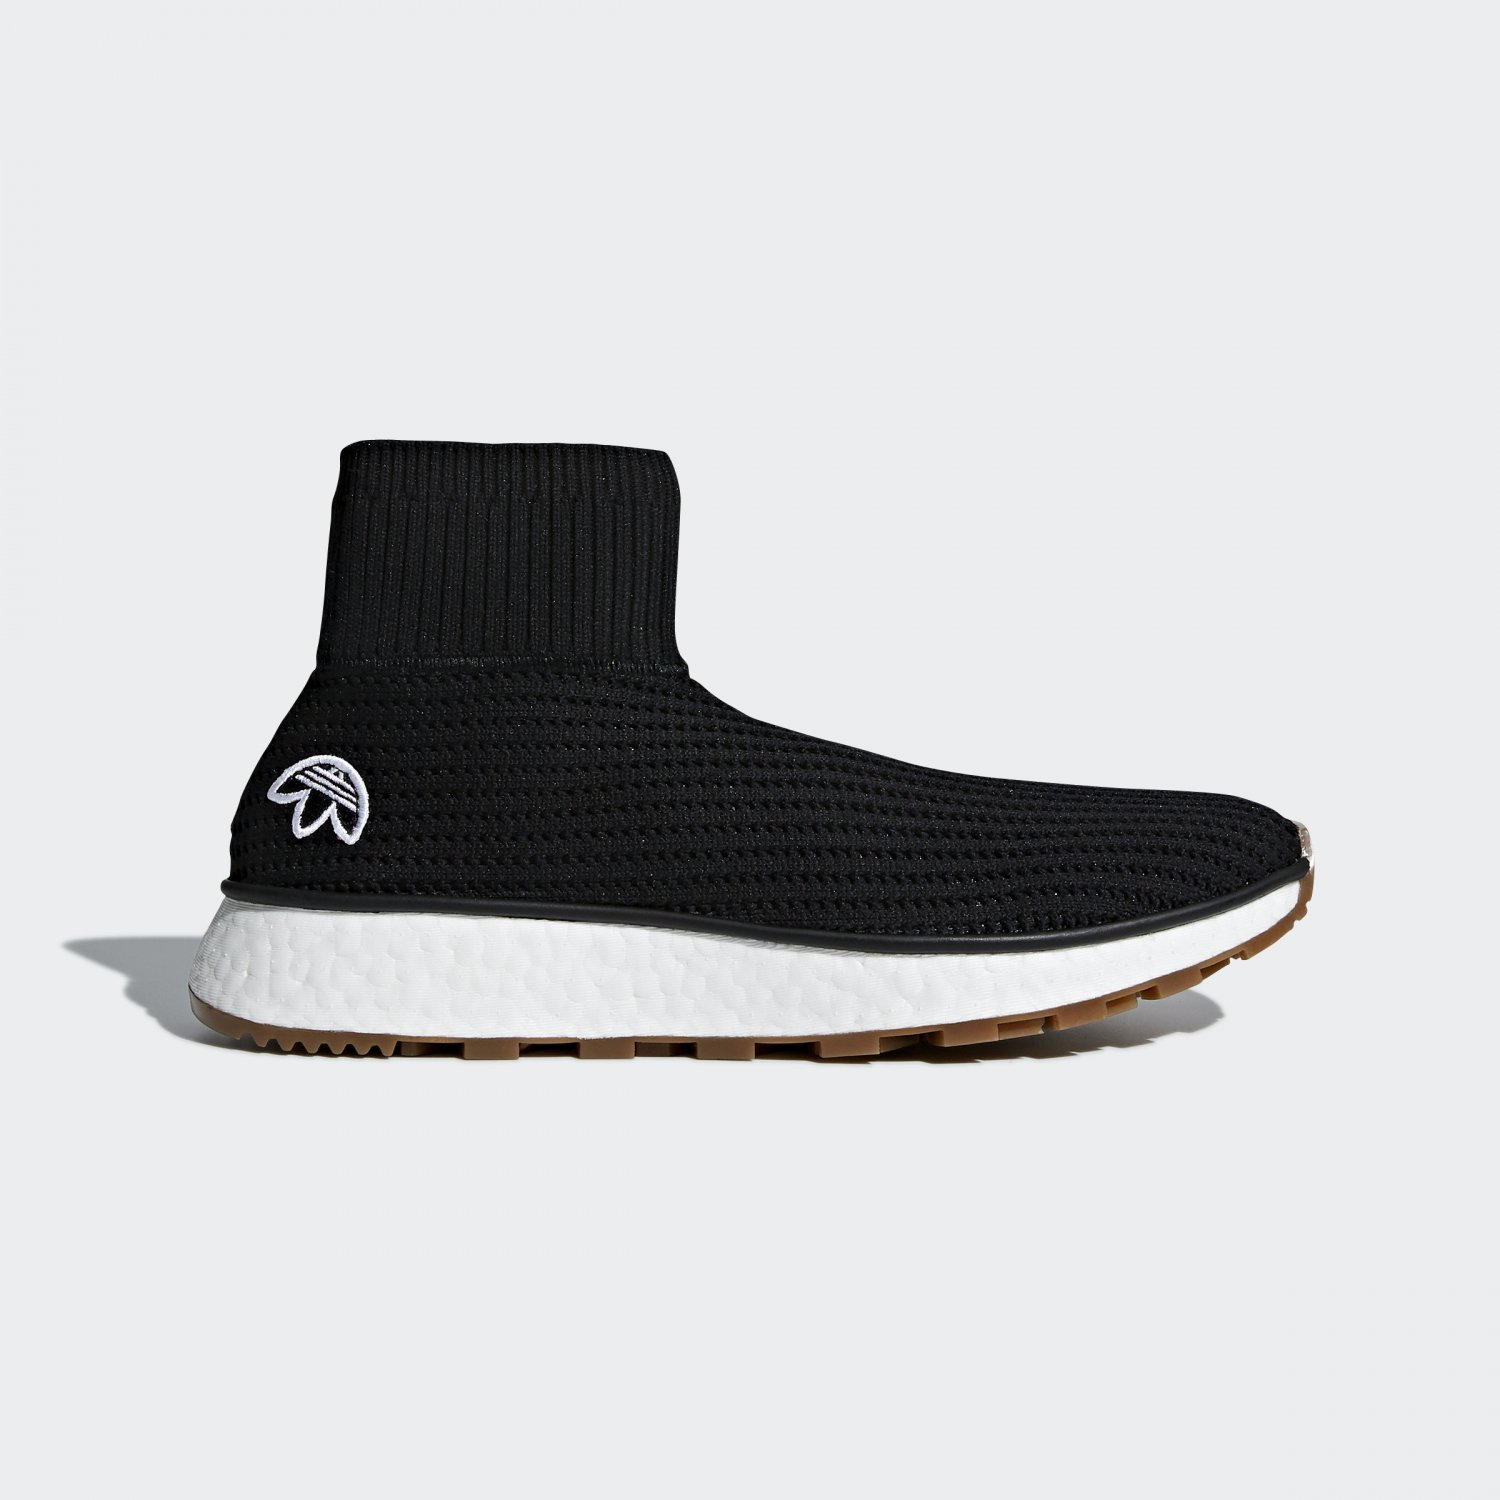 AW Run Alexander Wang Core Black